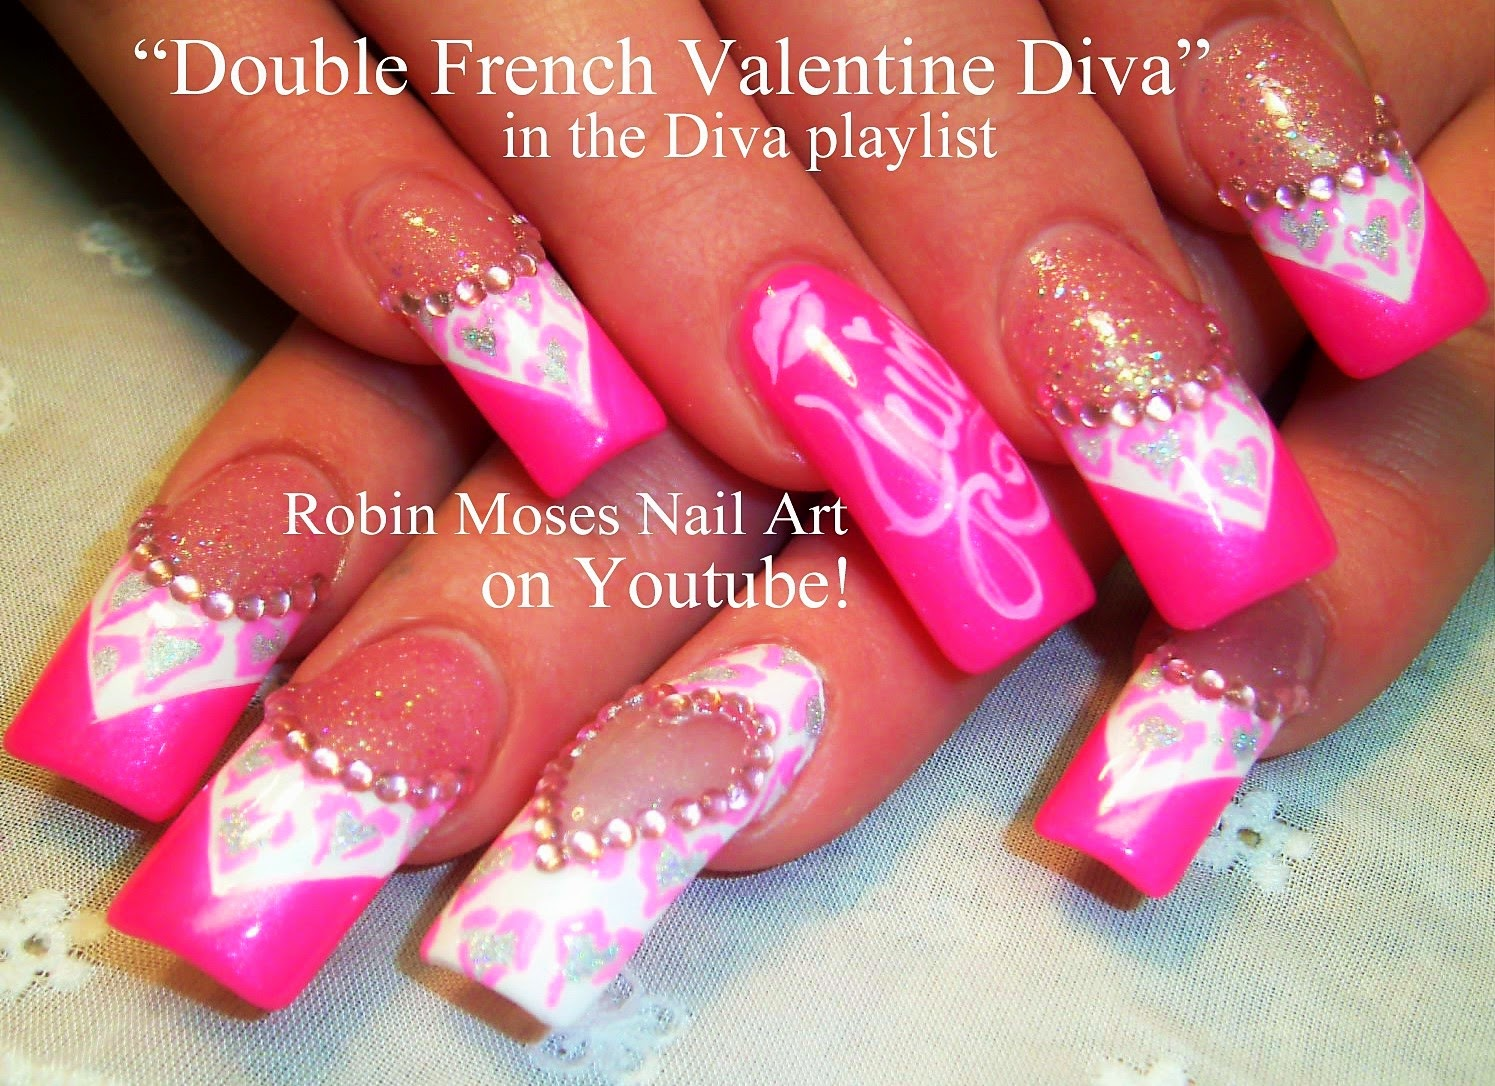 Nail Art by Robin Moses: May 2015